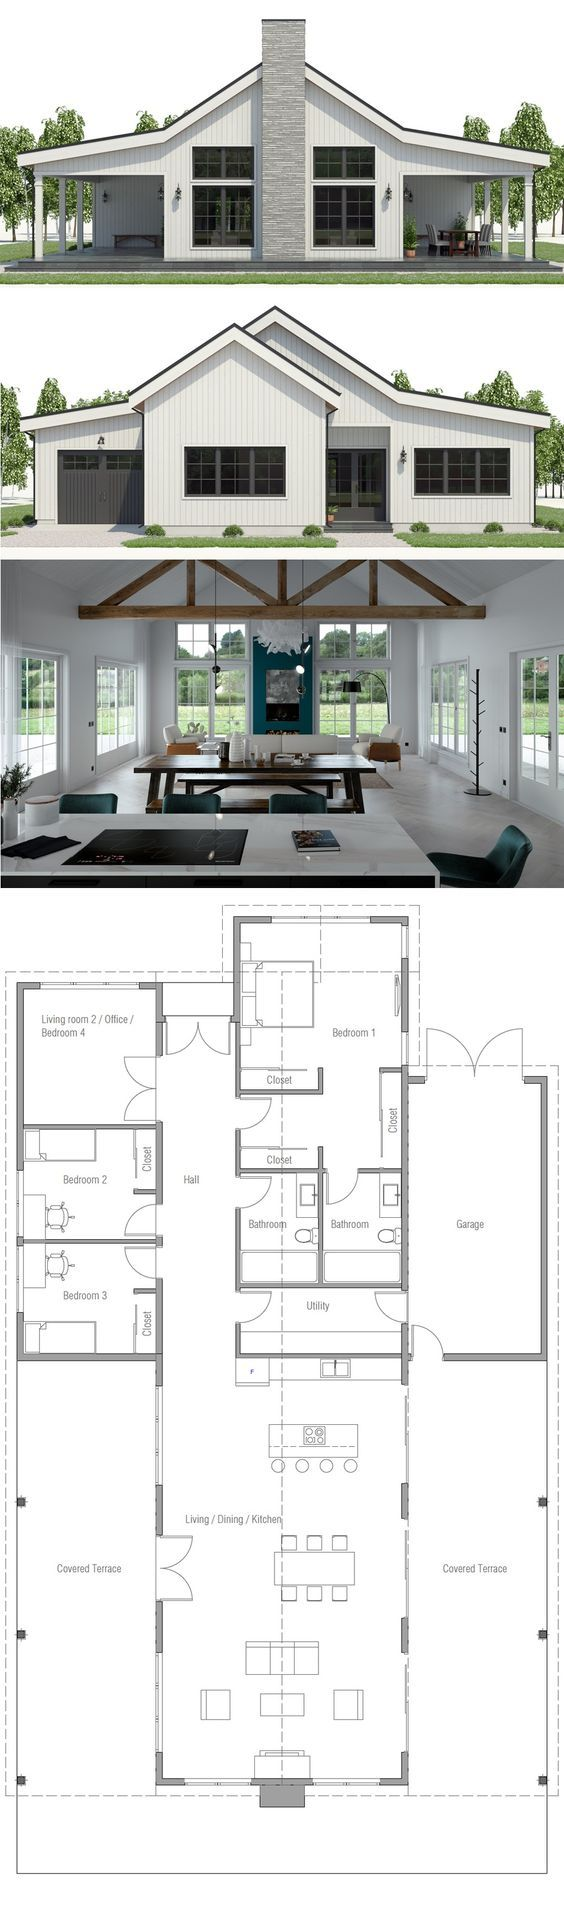 Hausbau Hausplan Hausbu Grundriss New House Plans Dream House Plans Barn House Plans